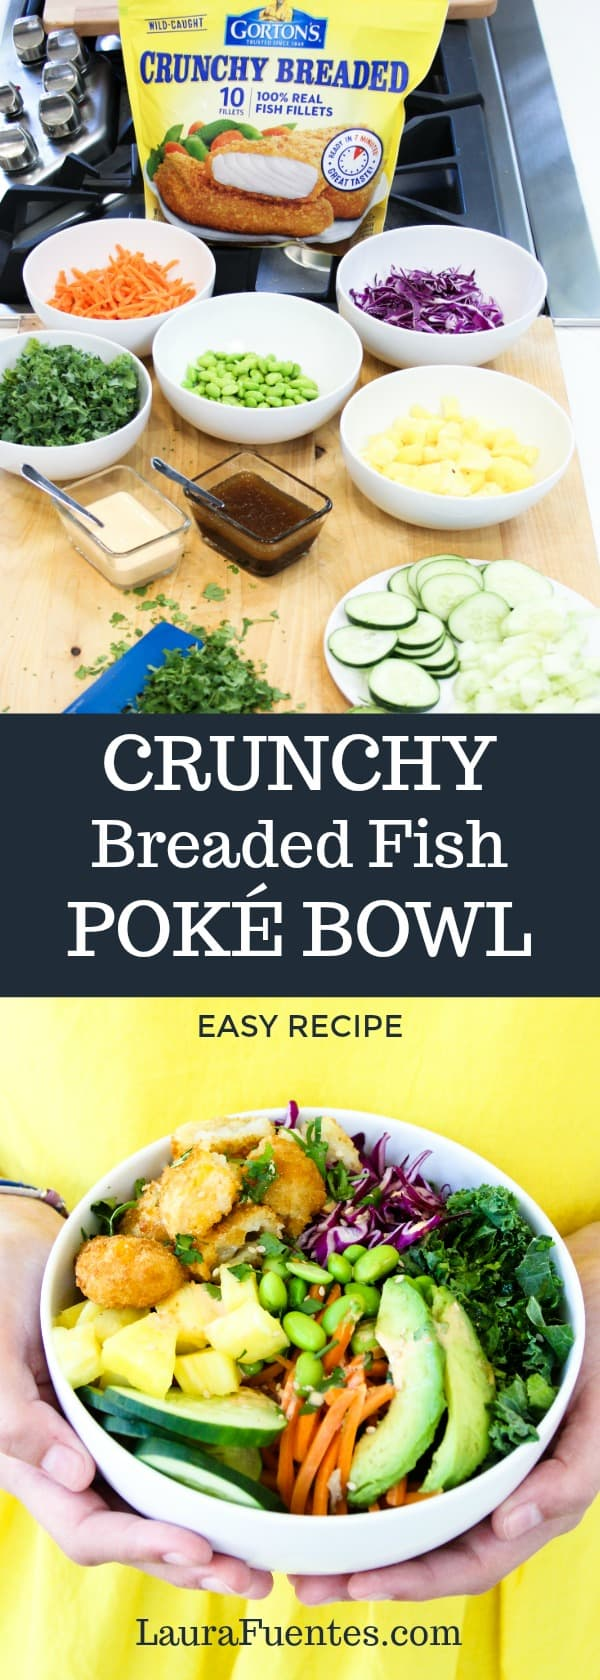 Easy to make for a quick, healthy midweek meal, these homemade Crunchy Fish Poké Bowls that even the pickiest of eaters will love! #ad @gortonsseafood #TrustGortons